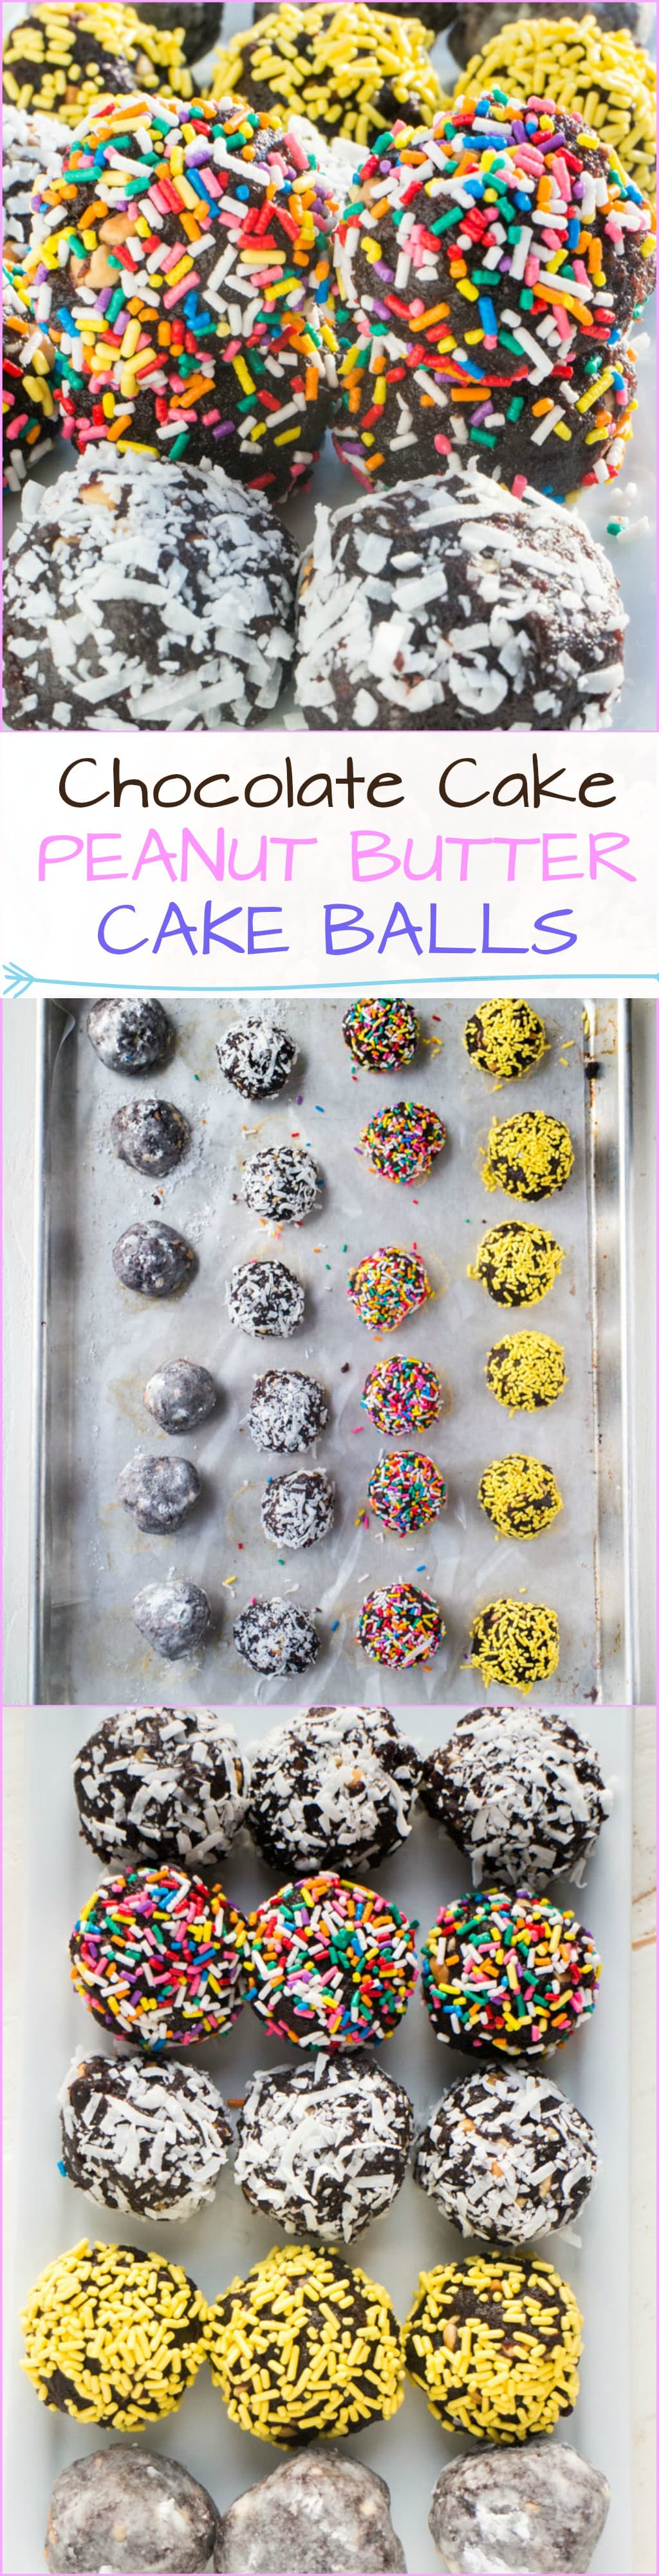 how to make chocolate peanut butter balls with cocoa powder